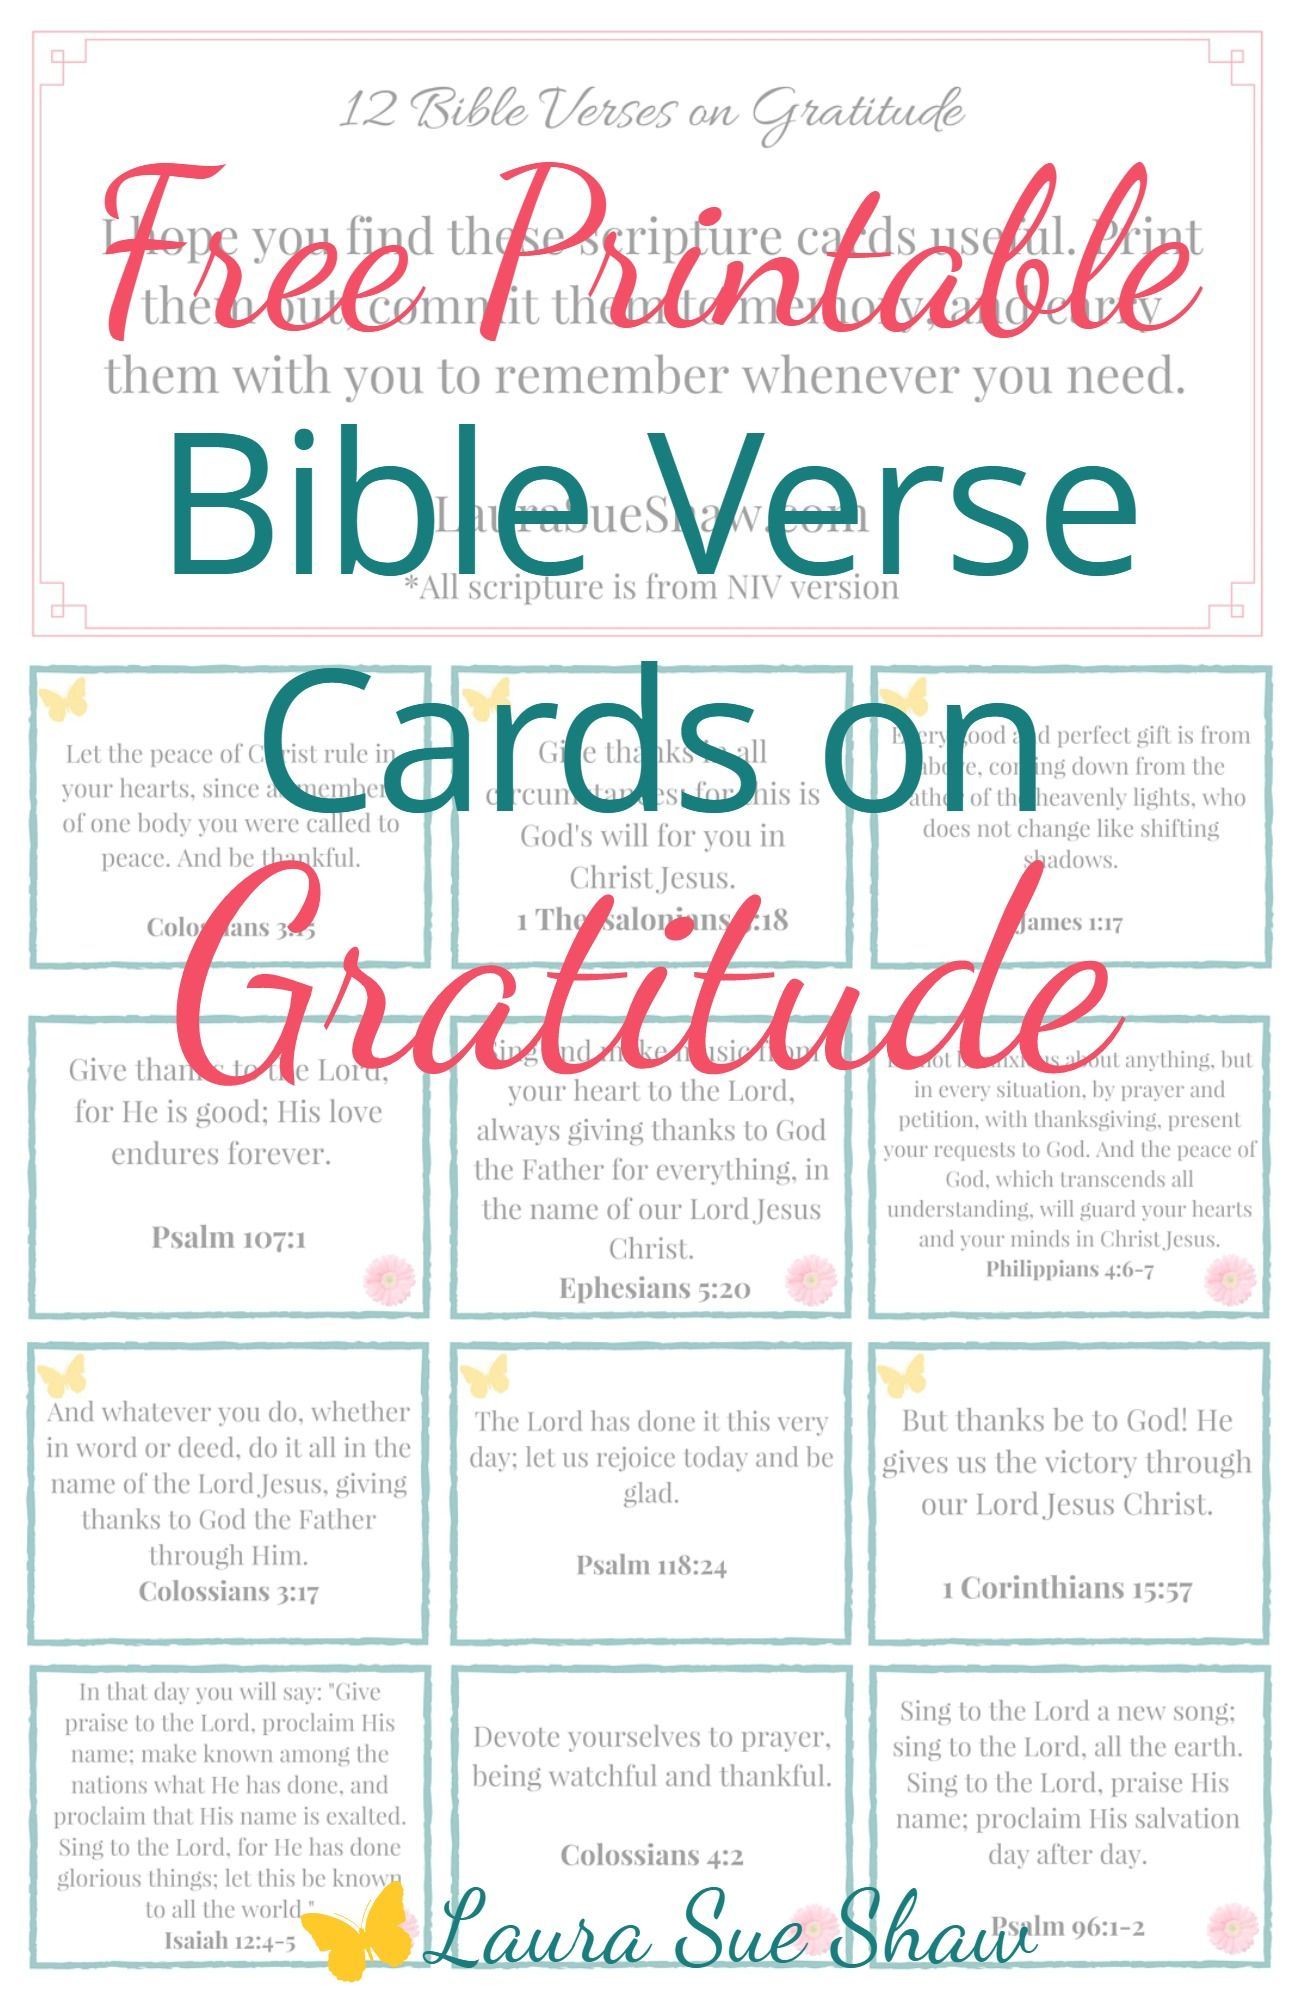 Free Printable Bible Verse Cards On Gratitude